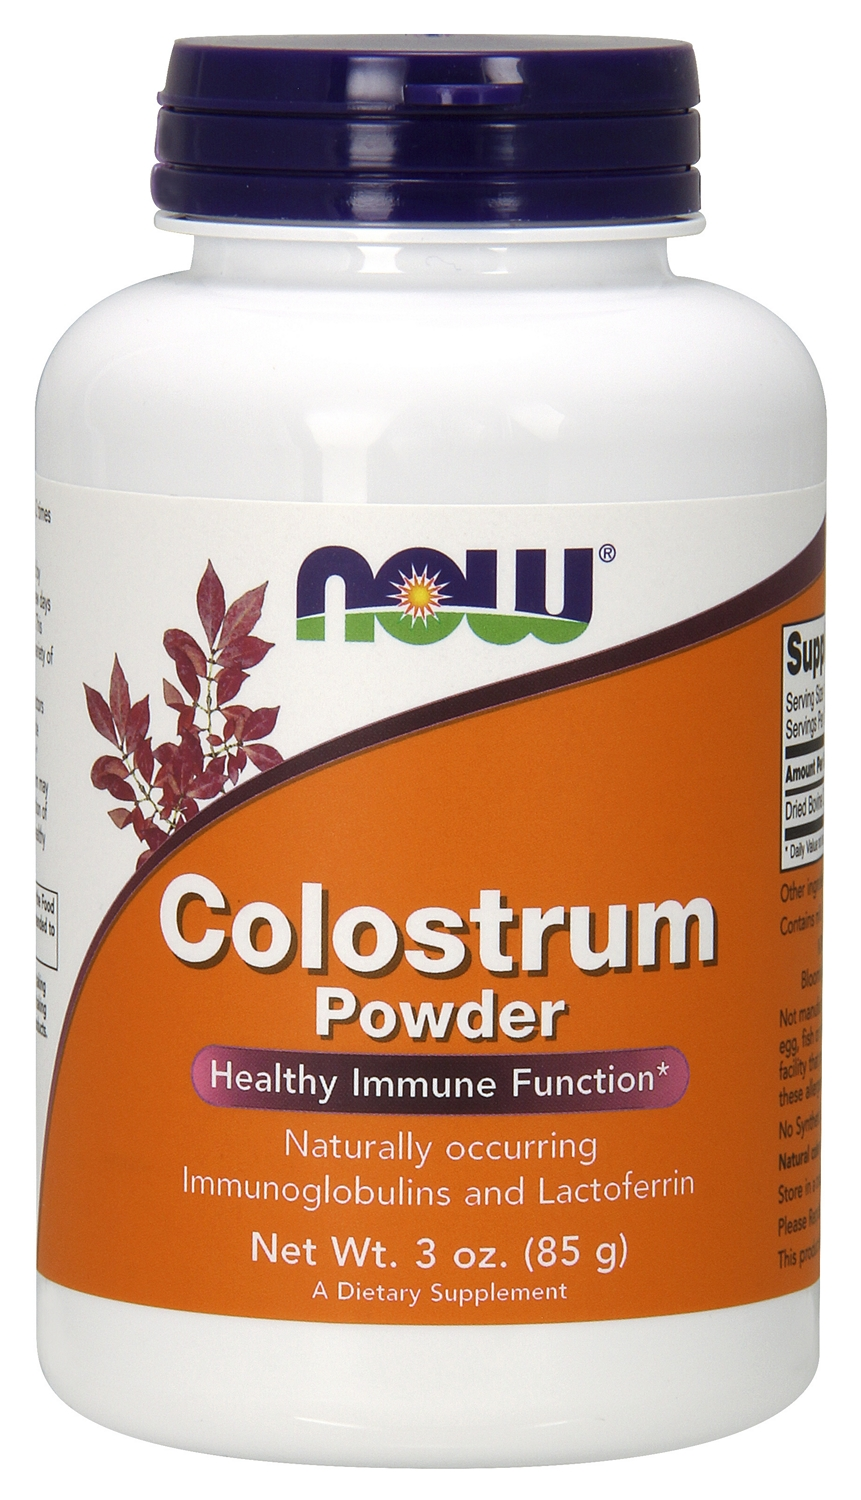 Colostrum 100% Pure Powder 3 oz (85 g) by NOW